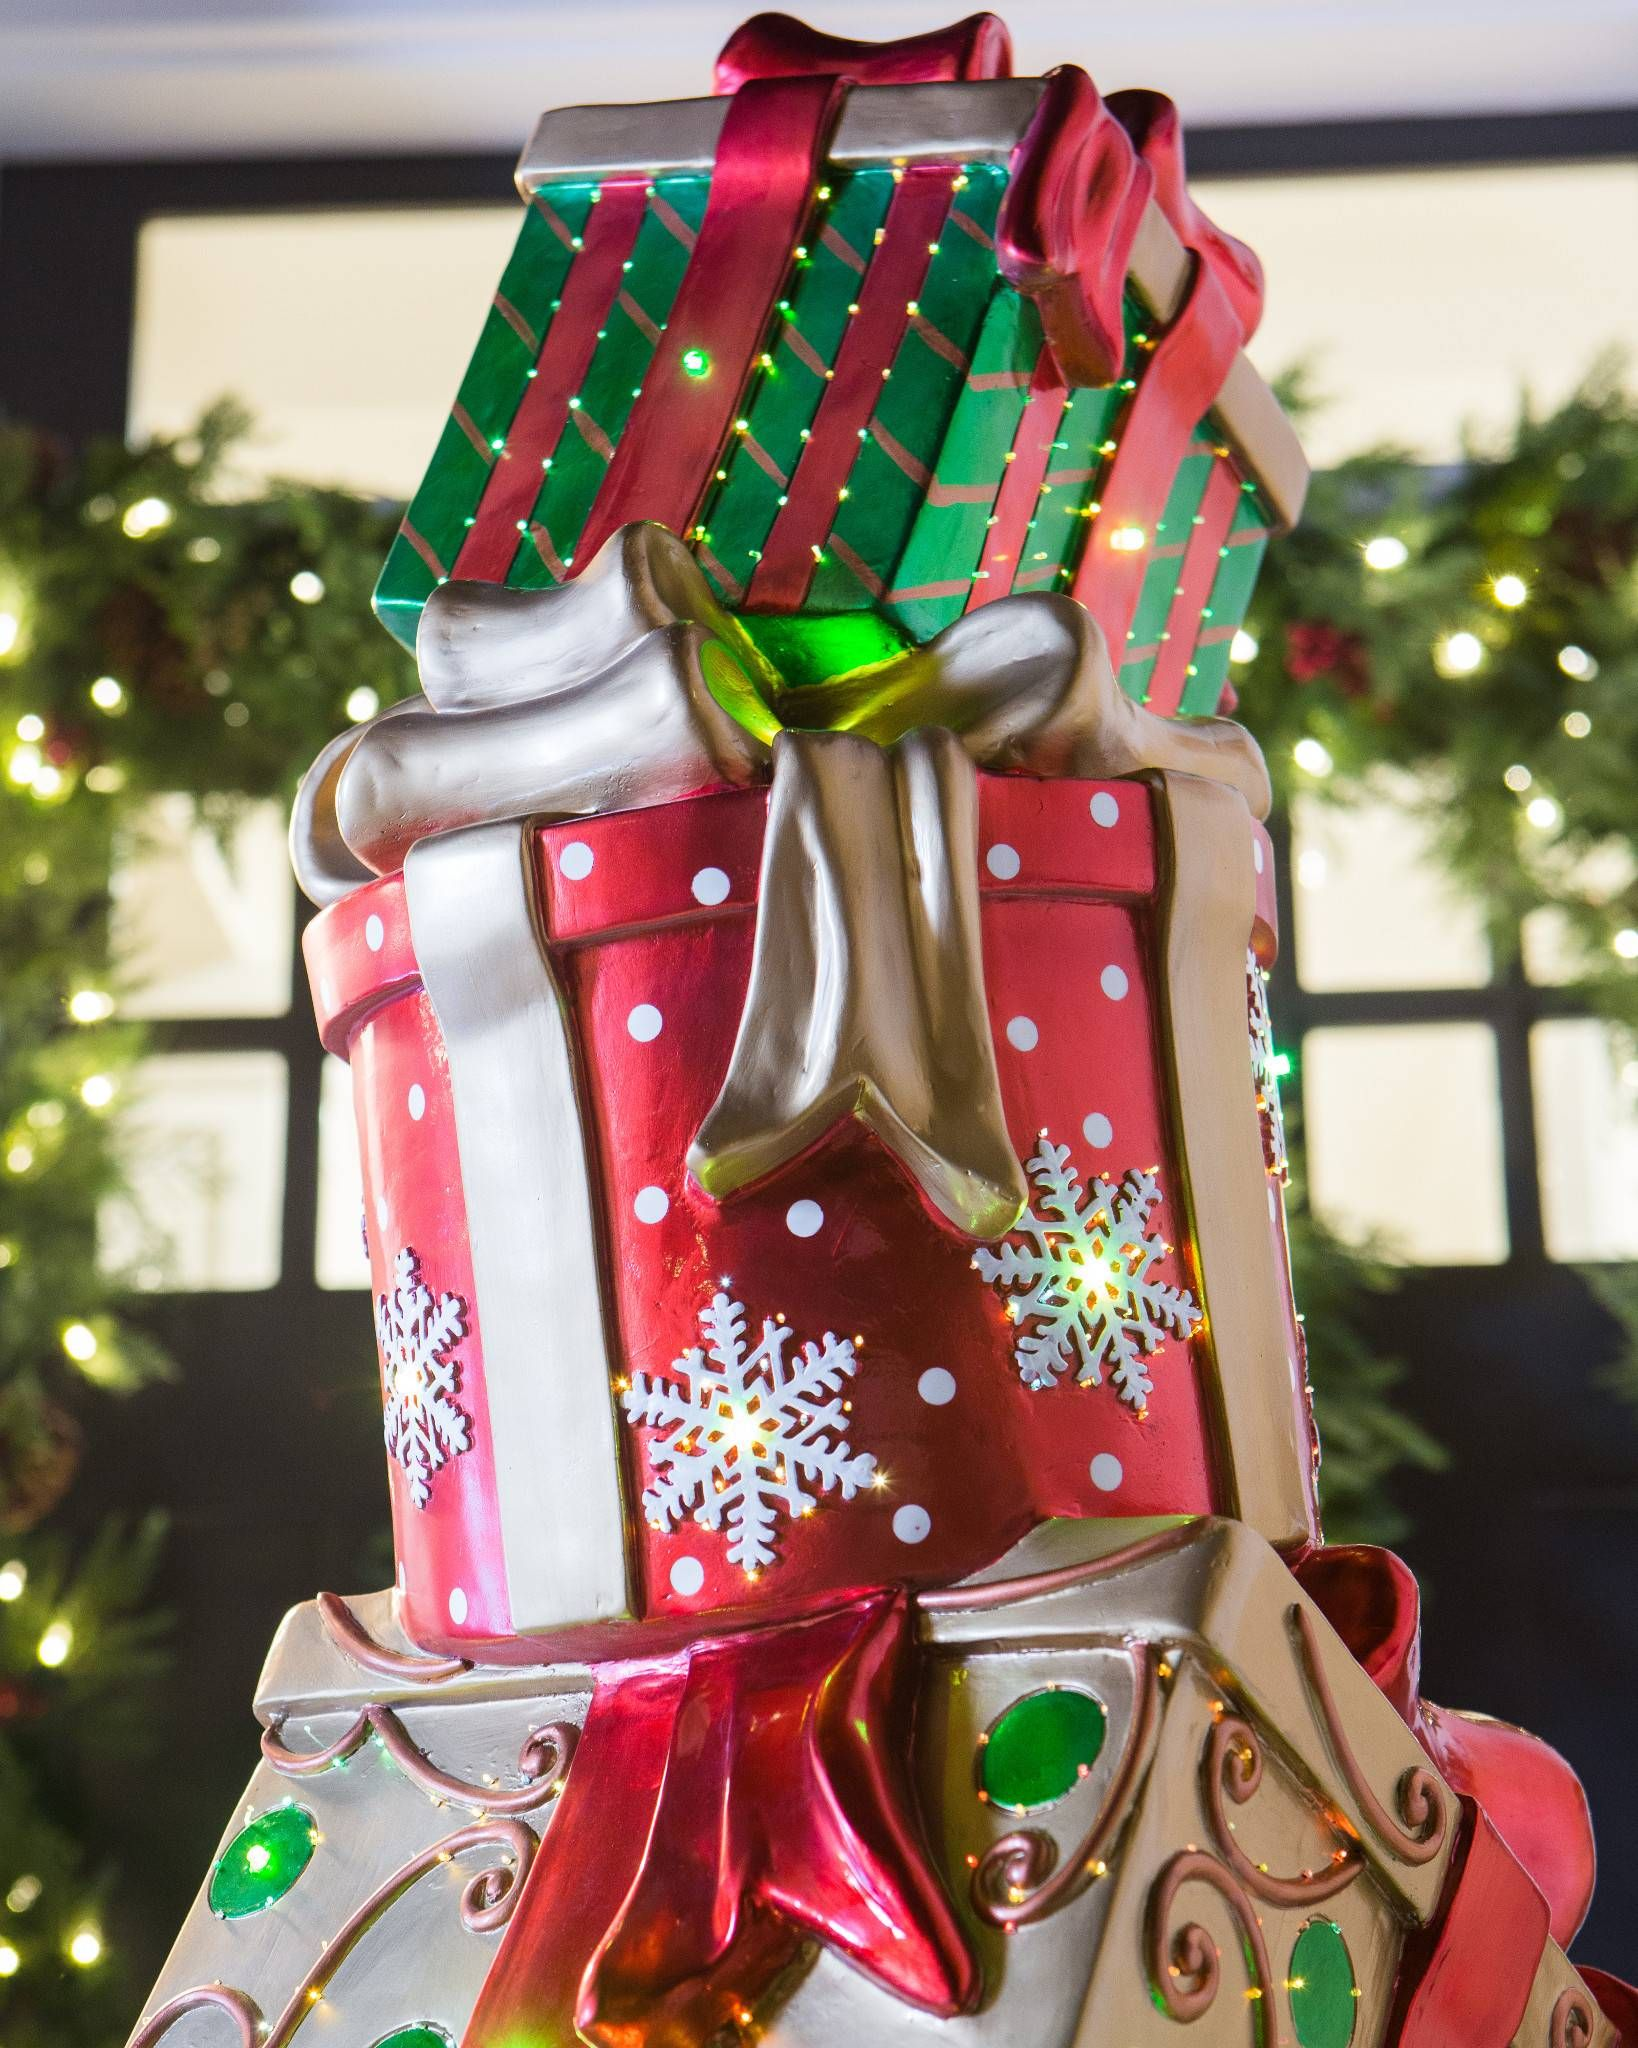 High Quality Detais Of The Outdoor Fiber Optic Dazzling Stacked Presents